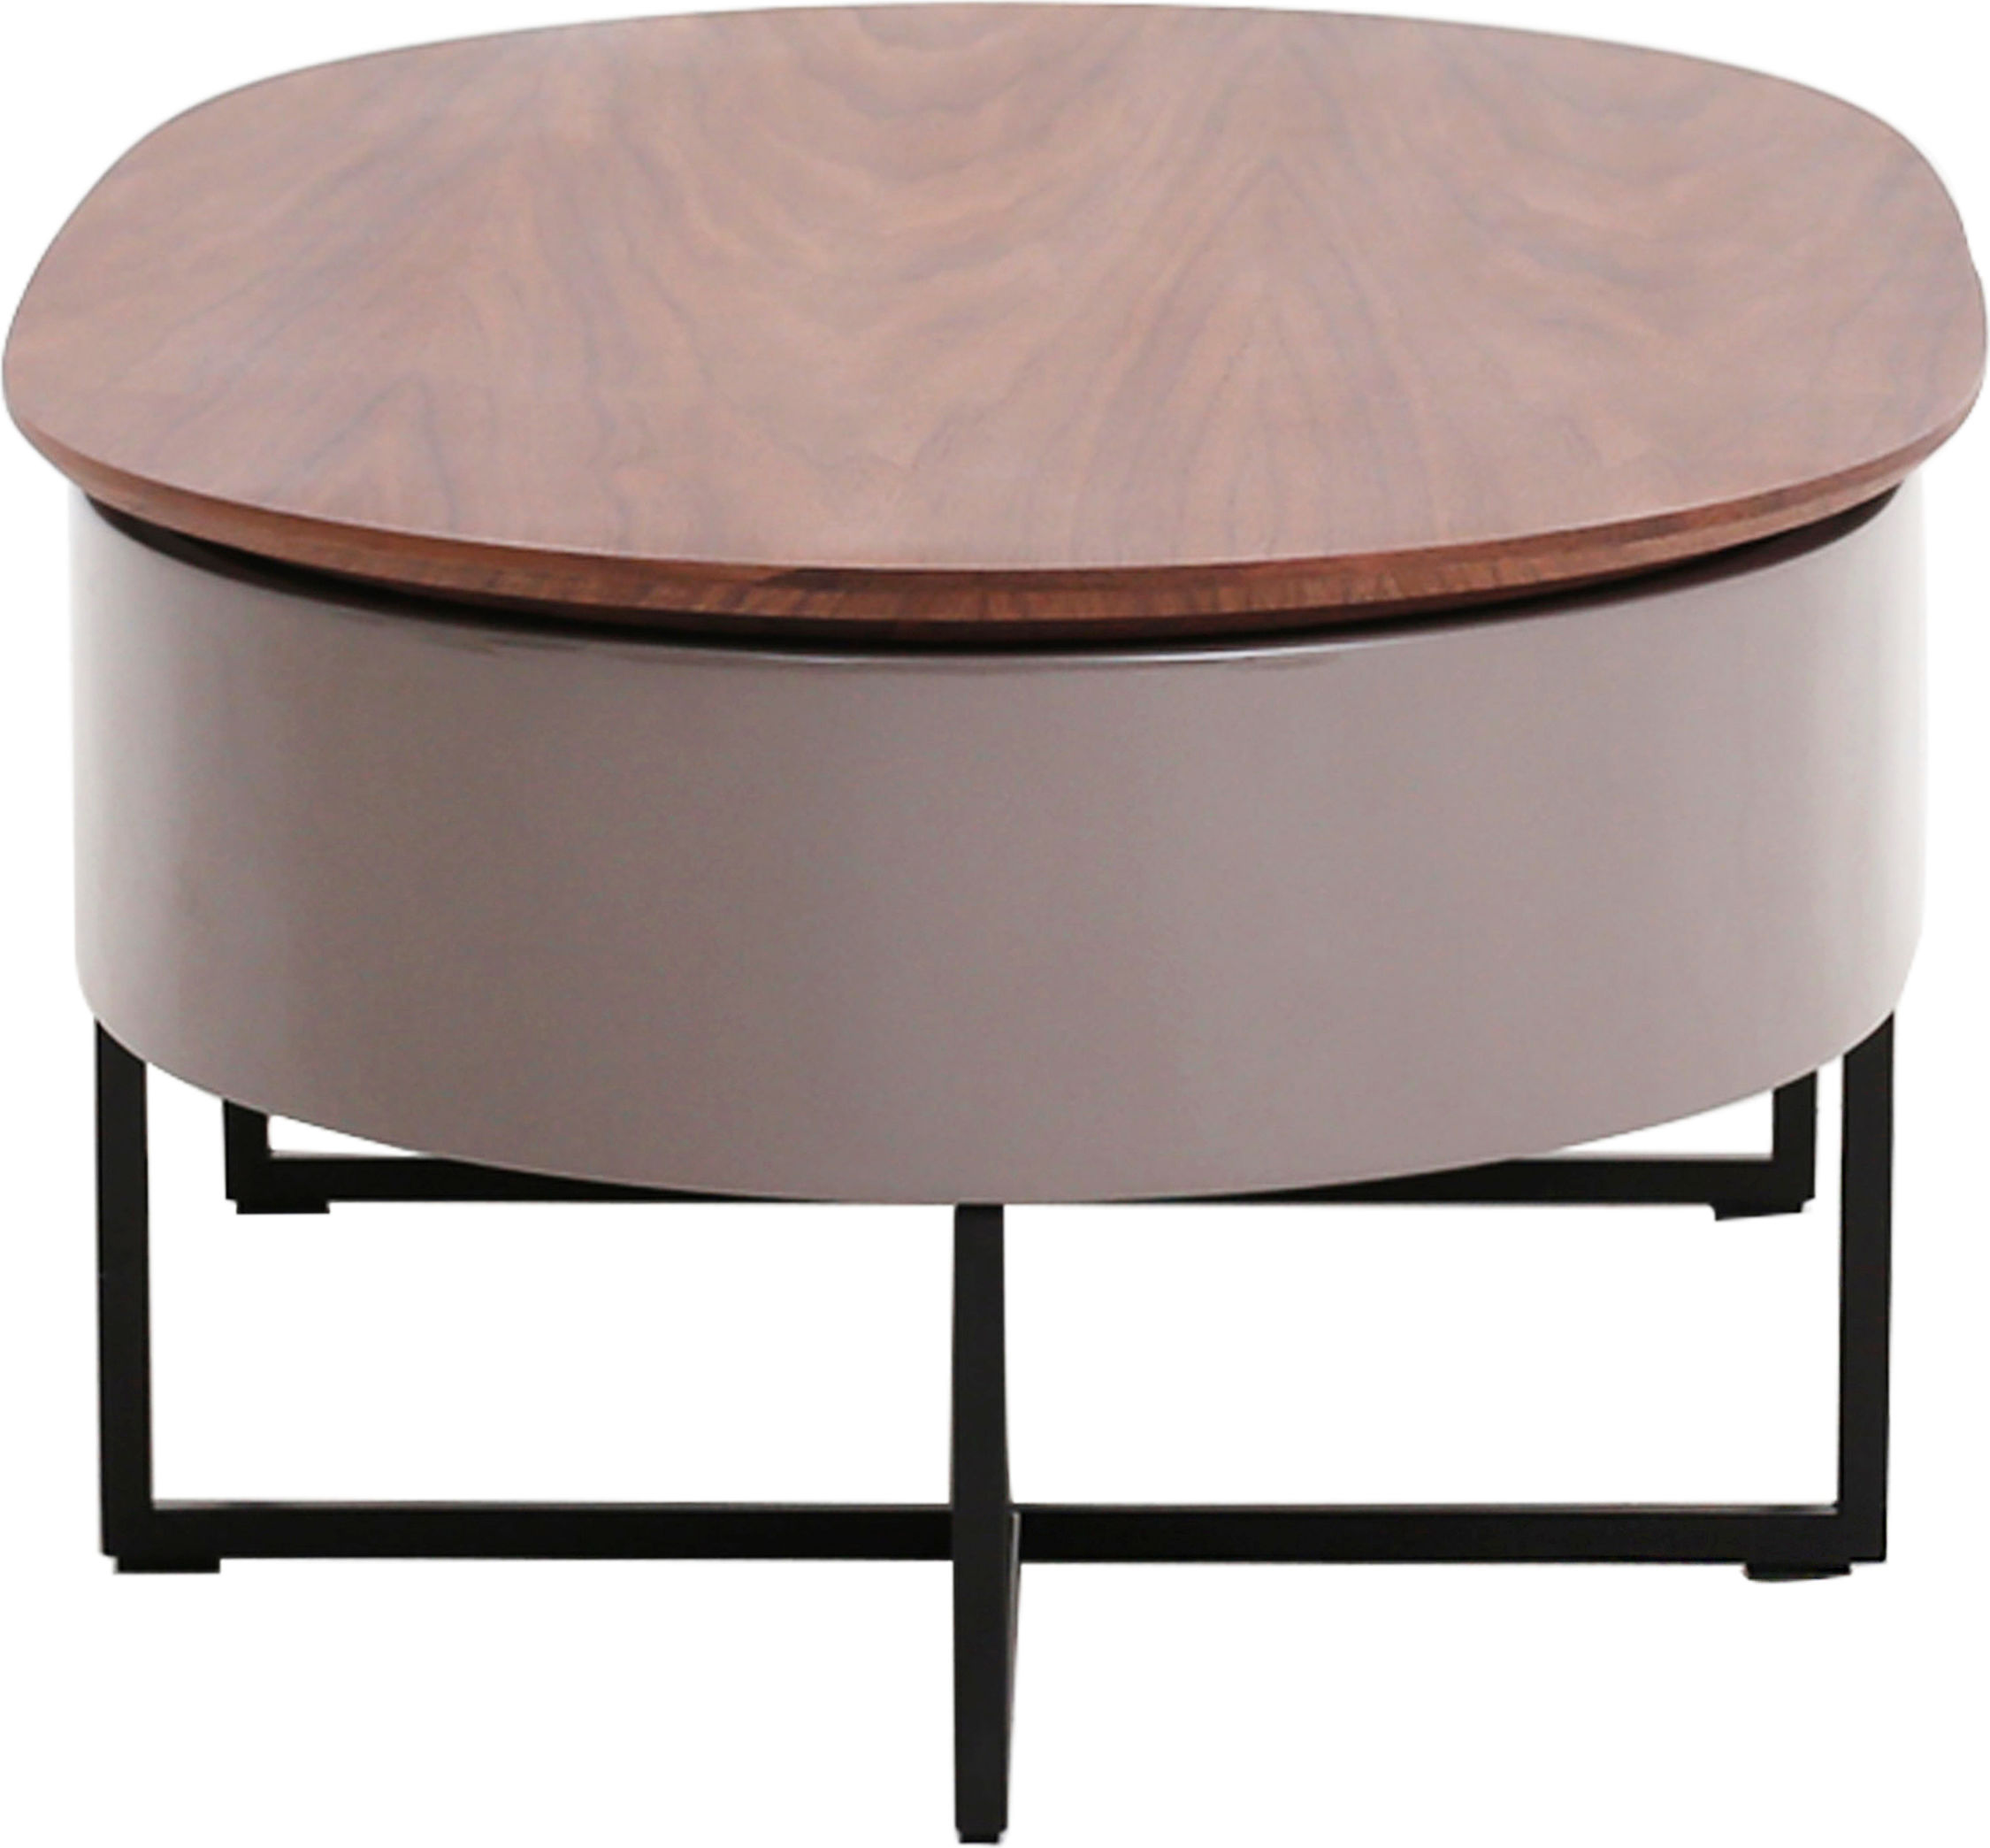 Hansel Lift Top Oval Coffee Table